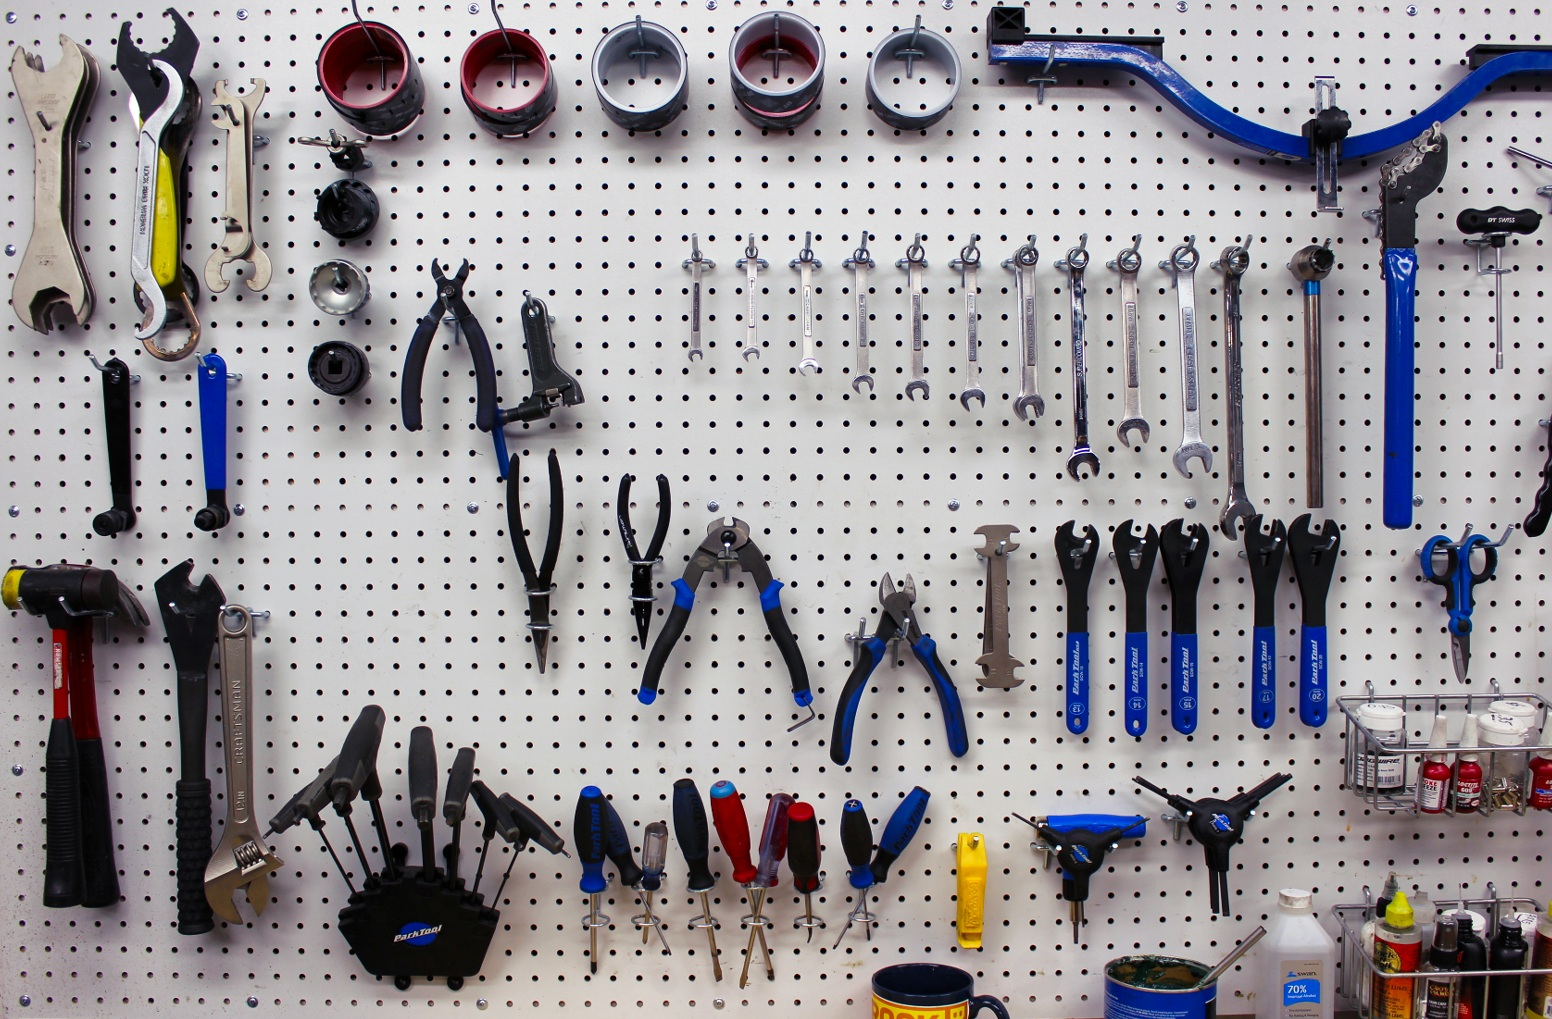 All the tools!